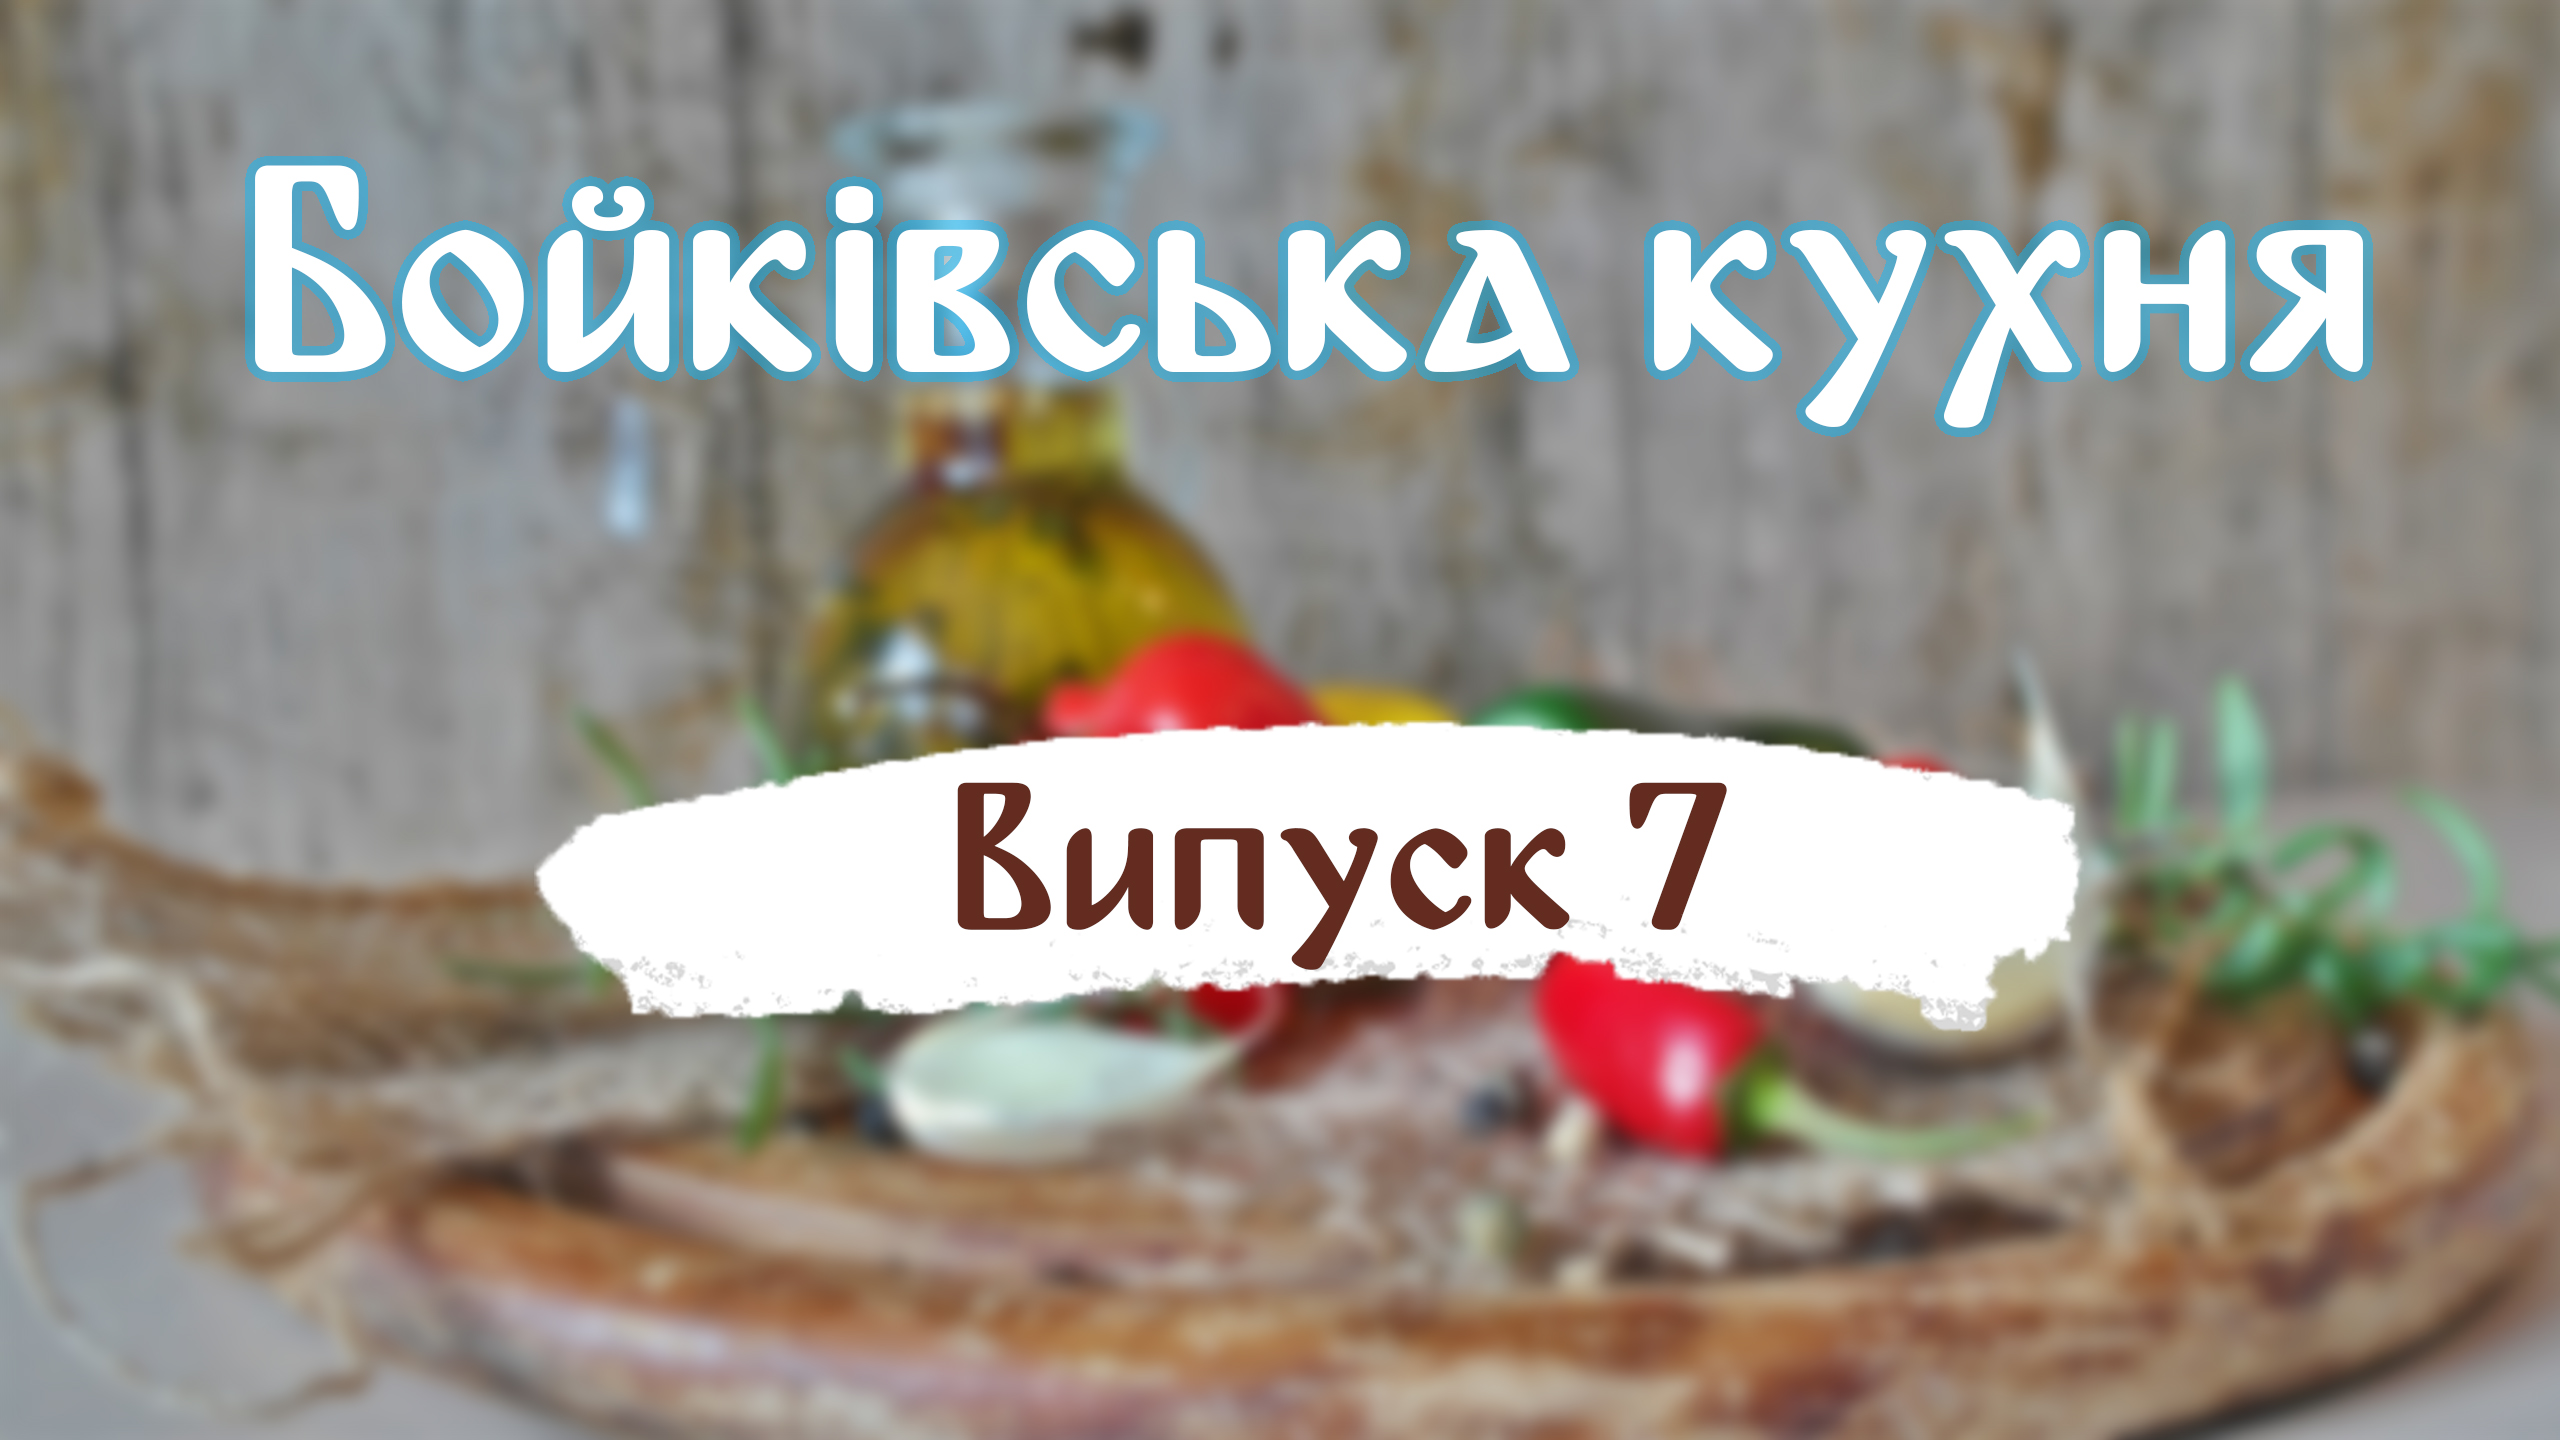 Read more about the article Бойківська кухня. Випуск 7. Хліб.